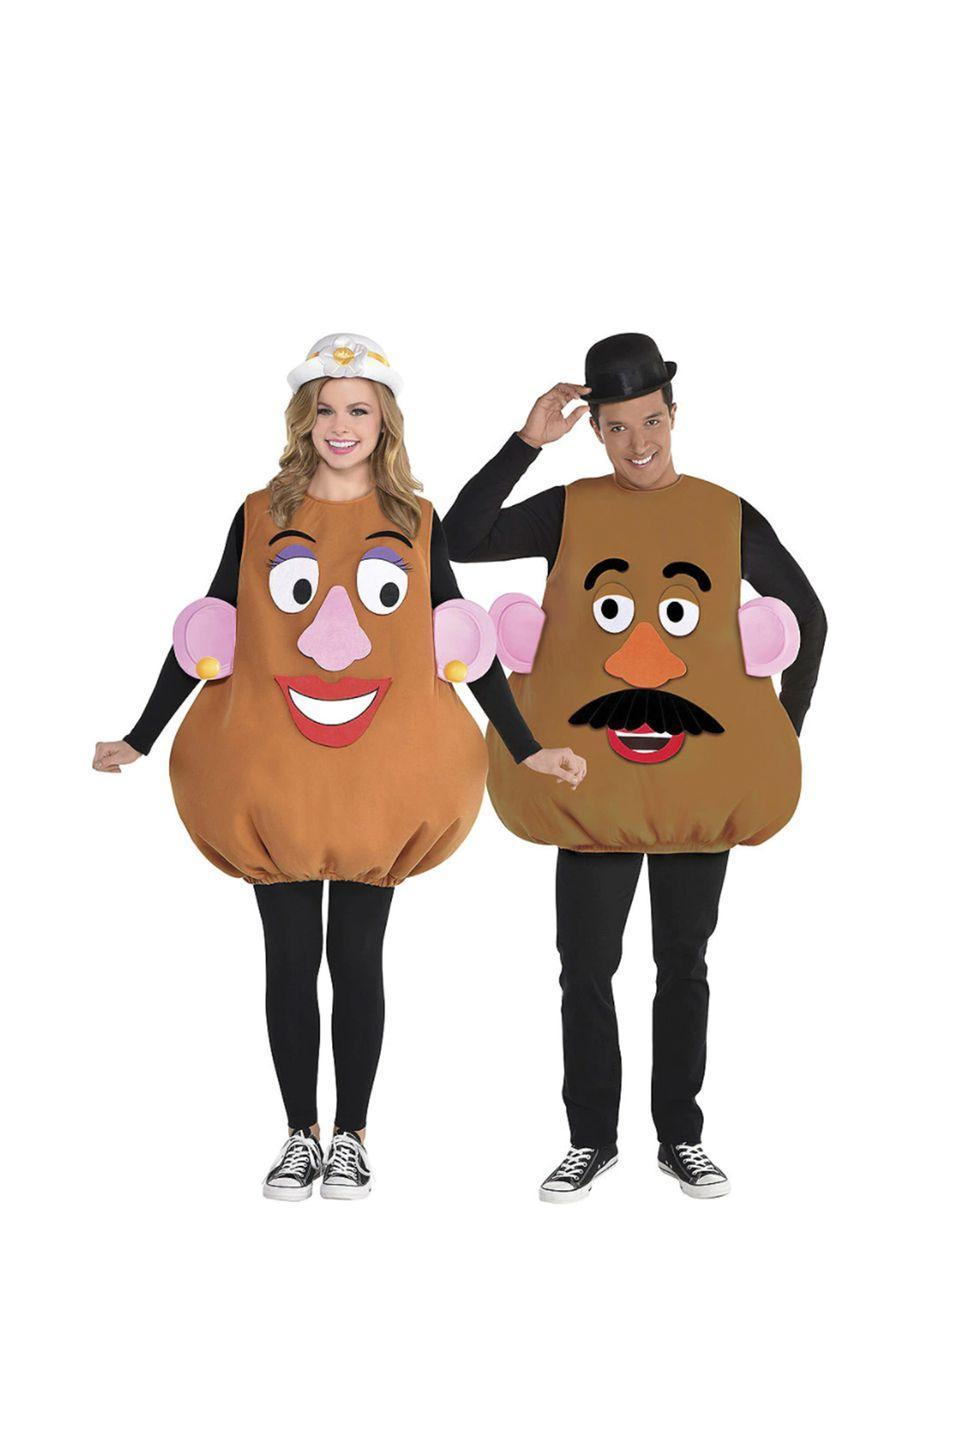 """<p>You can't go wrong with this iconic couple. Bring Mr. and Mrs. Potato Head to any halloween party you attend.</p><p><a class=""""link rapid-noclick-resp"""" href=""""https://www.partycity.com/adult-mr.-potato-head-and-mrs.-potato-head-couples-costume-accessory-kits-G842221.html?cgid=couples-costumes-disney"""" rel=""""nofollow noopener"""" target=""""_blank"""" data-ylk=""""slk:SHOP MR. POTATO HEAD COSTUME"""">SHOP MR. POTATO HEAD COSTUME</a></p><p><a class=""""link rapid-noclick-resp"""" href=""""https://www.partycity.com/adult-mrs.-potato-head-costume-accessory-kit---toy-story-4-P842219.html"""" rel=""""nofollow noopener"""" target=""""_blank"""" data-ylk=""""slk:SHOP MRS. POTATO HEAD COSTUME"""">SHOP MRS. POTATO HEAD COSTUME</a> </p>"""